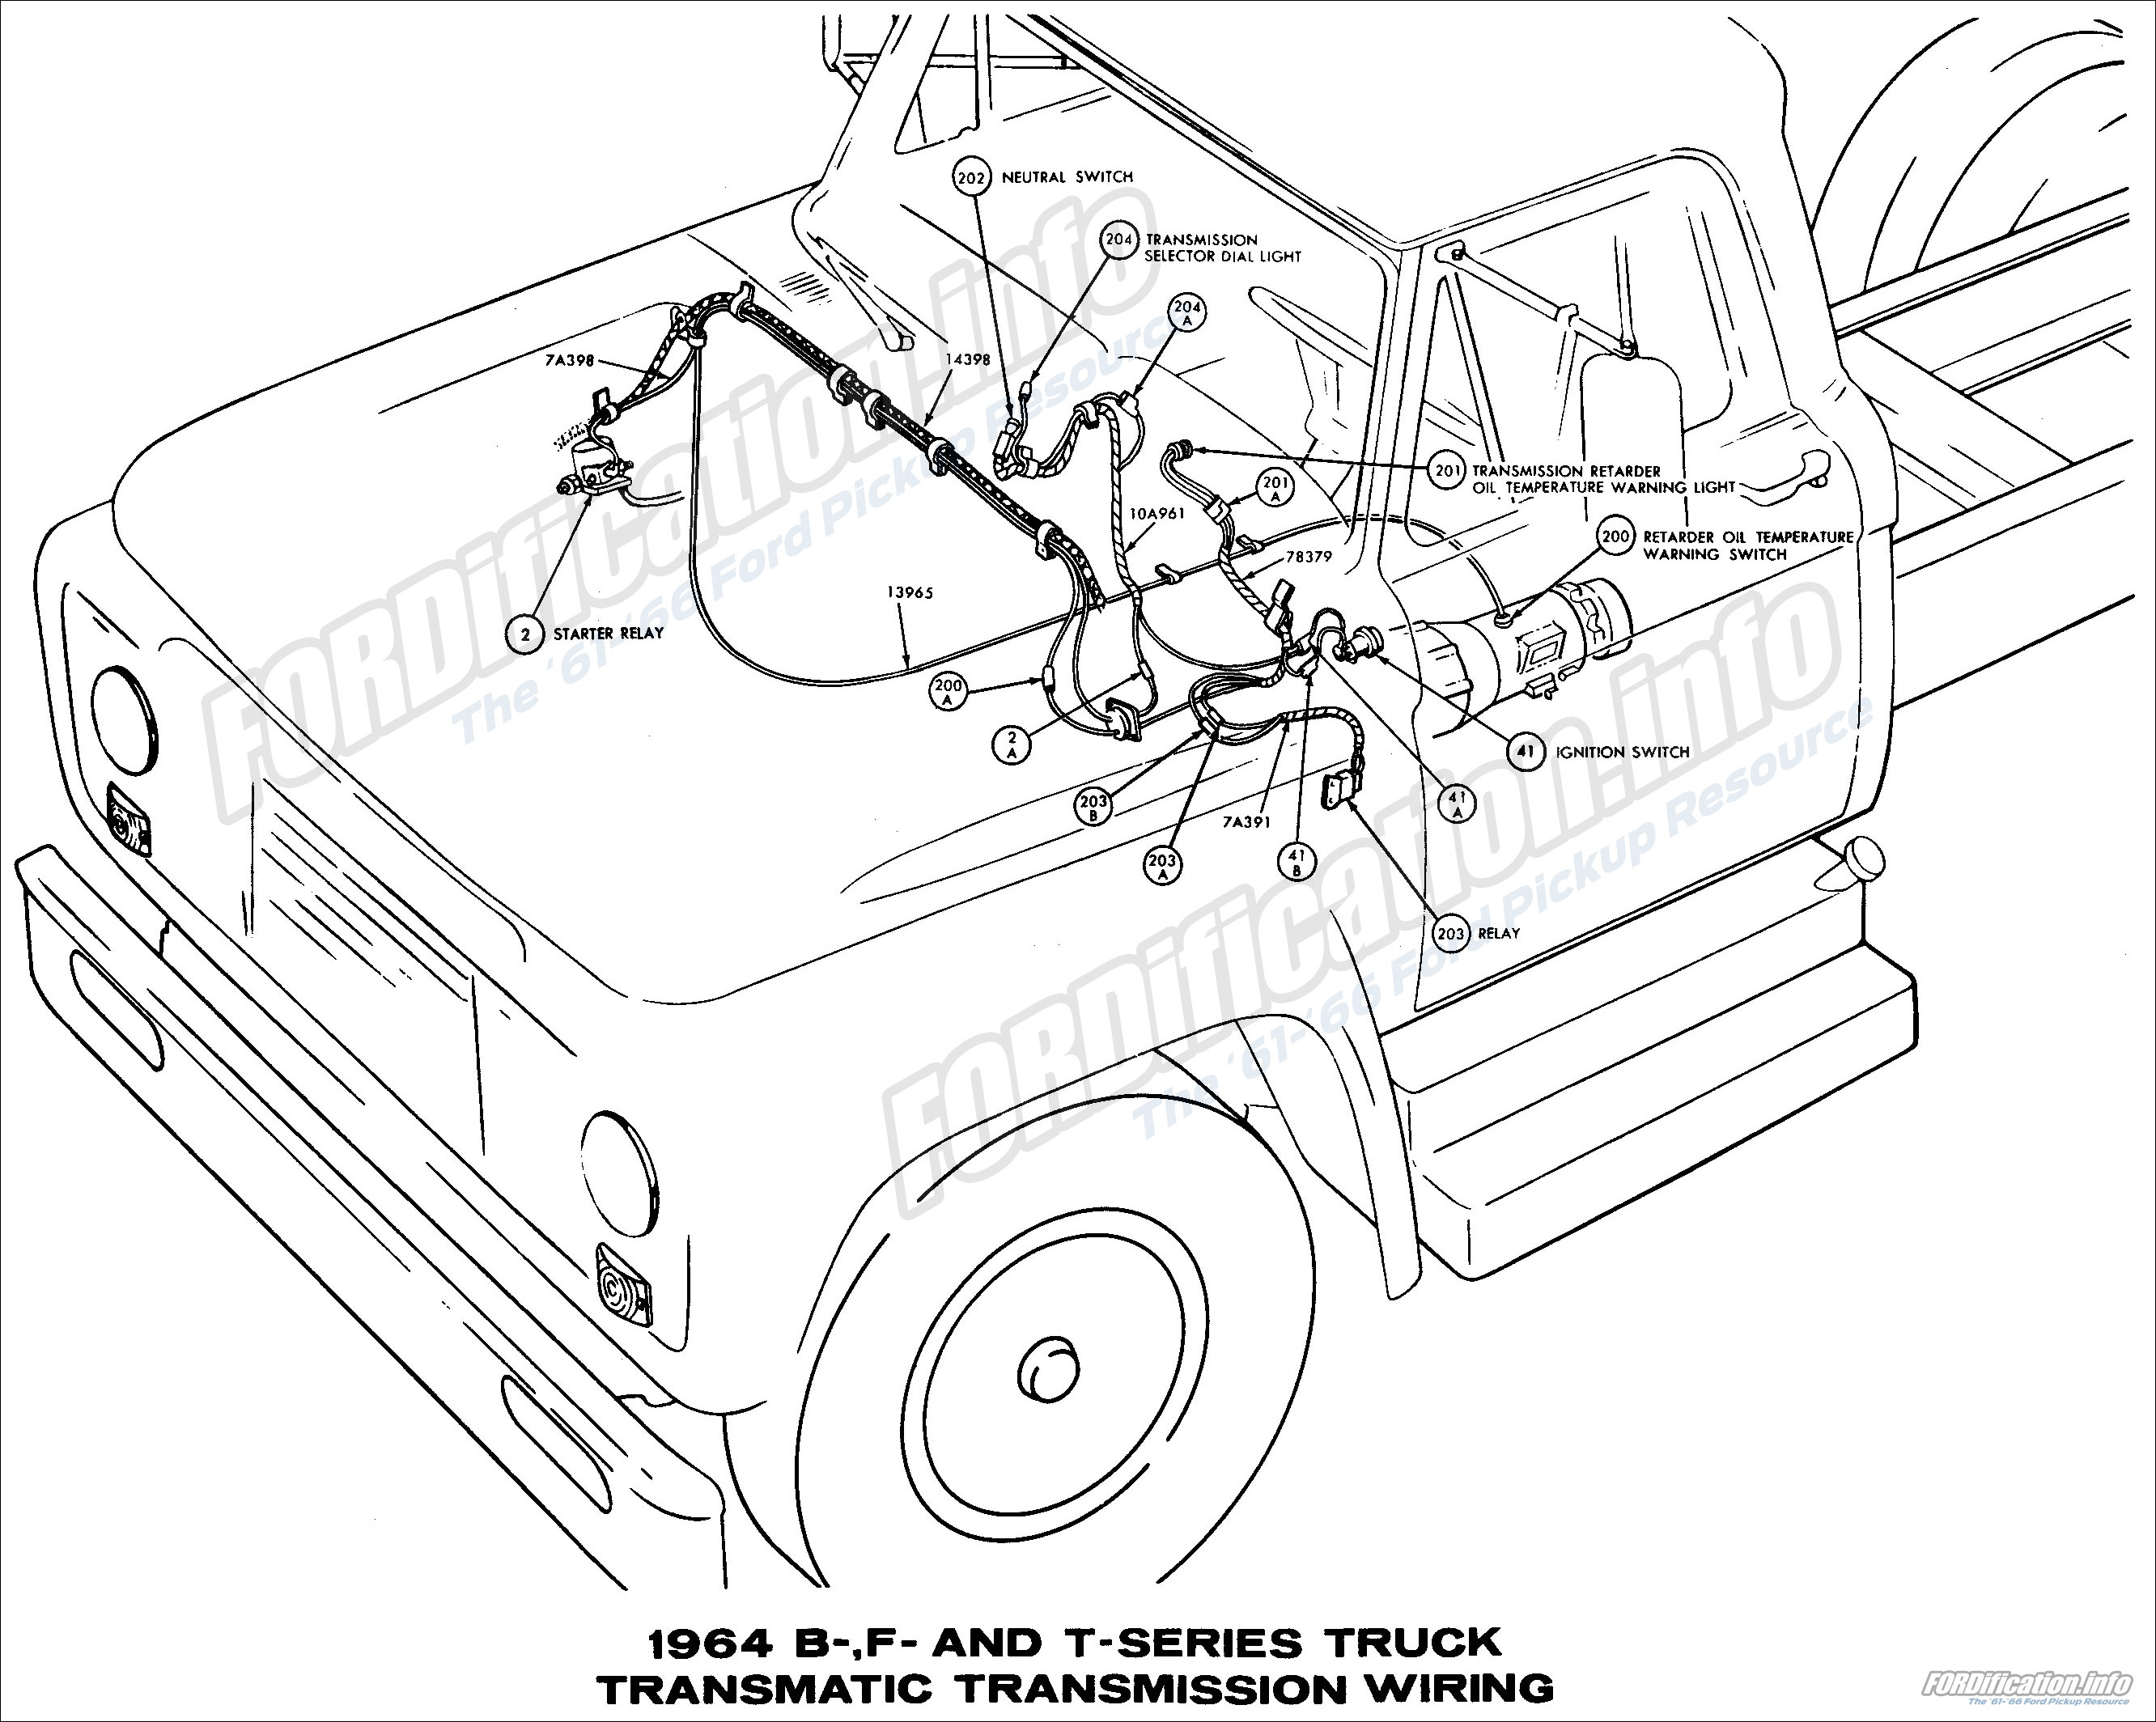 1964_13 1964 ford truck wiring diagrams fordification info the '61 '66 truck wiring diagrams at bakdesigns.co